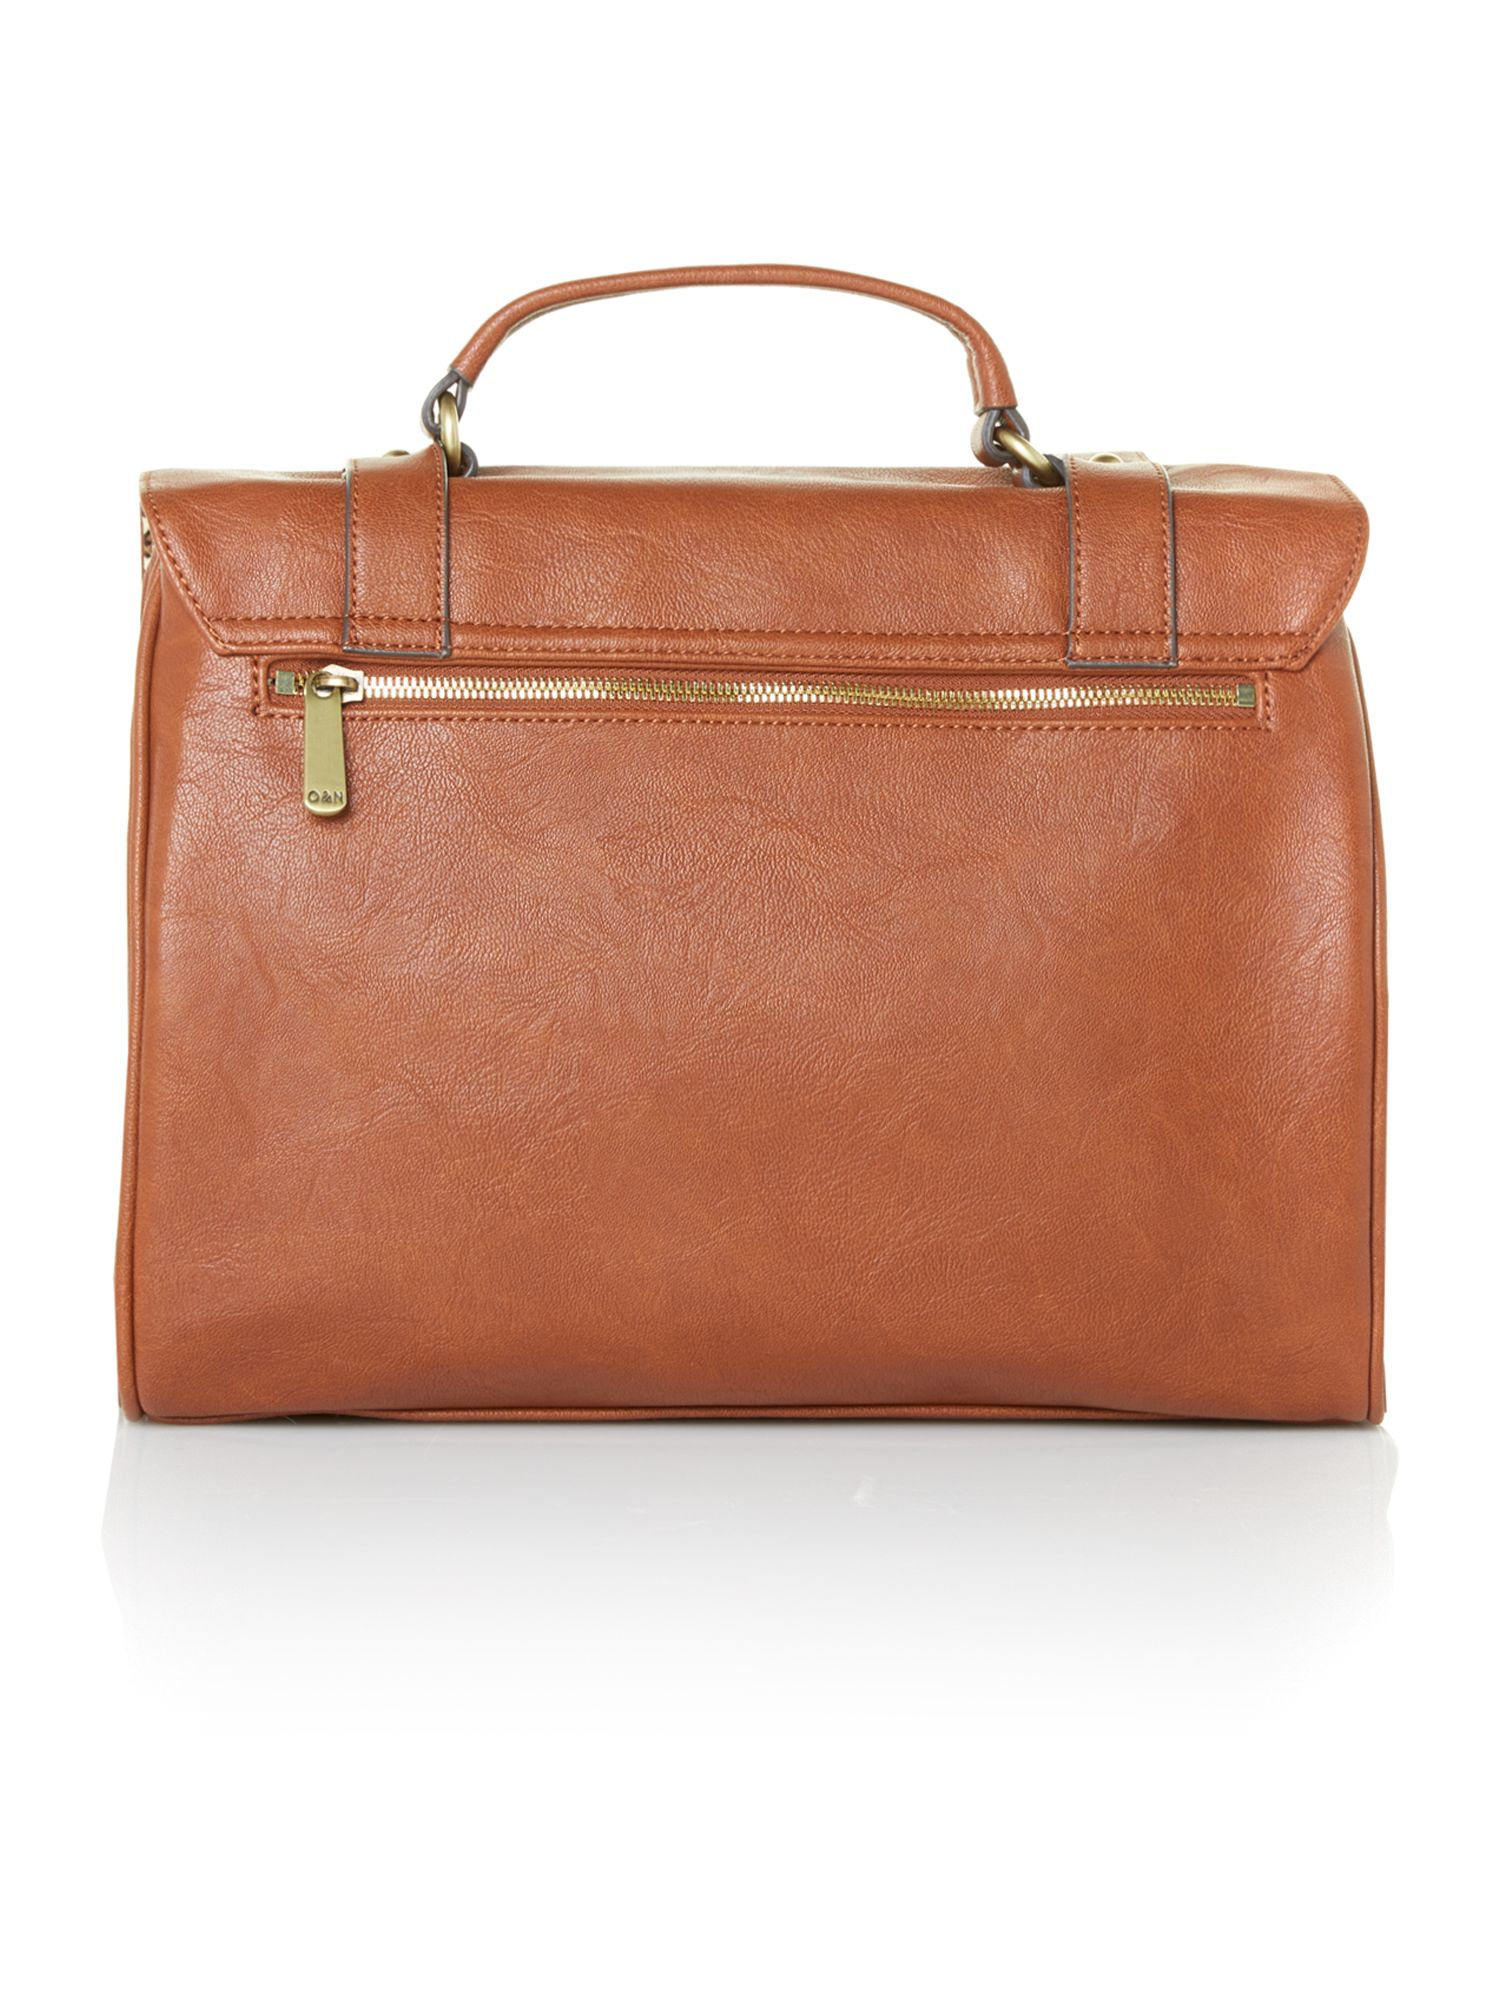 Hugo tan large satchel bag